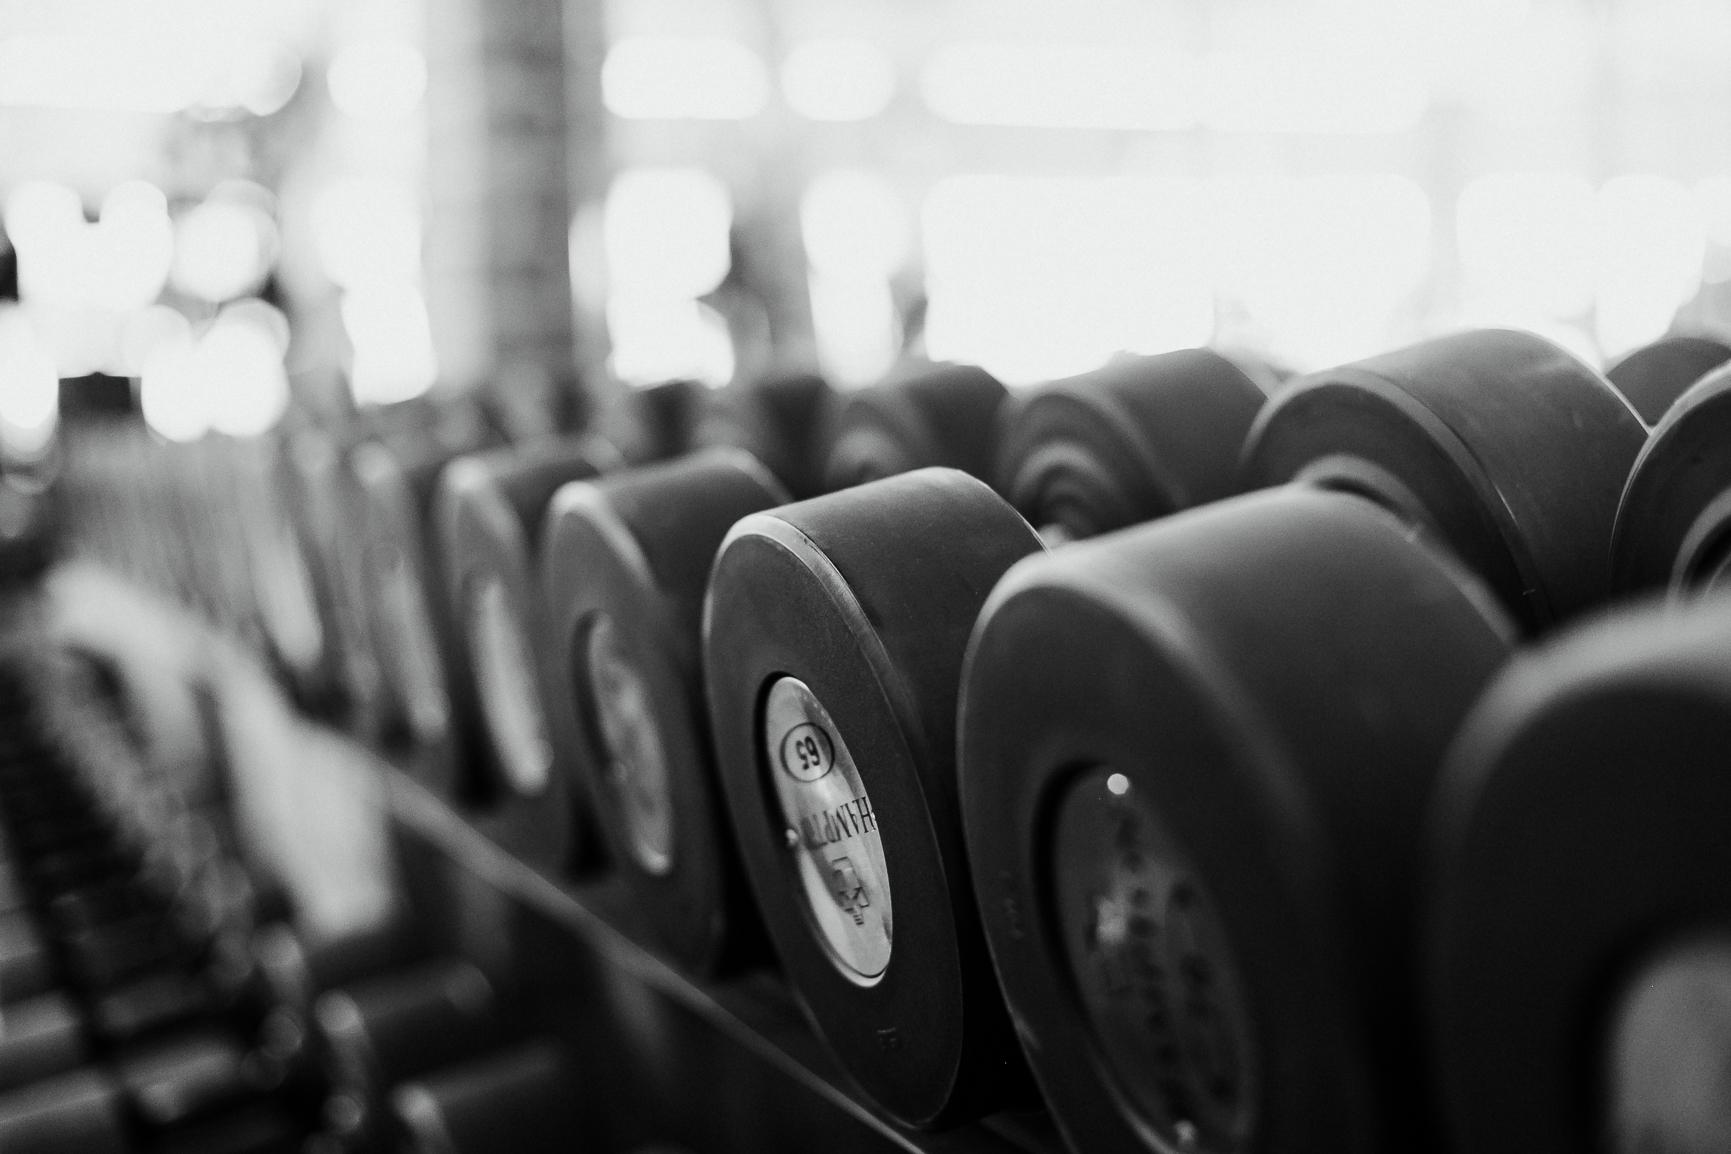 Who is Merit Fit? - Merit Fit is a Kansas City-based fitness coaching company. Founded by me,Dustin Duewel, I coach people on fitness and nutrition in person and online. I coach from City Gym, a state of the art gym located in Waldo.